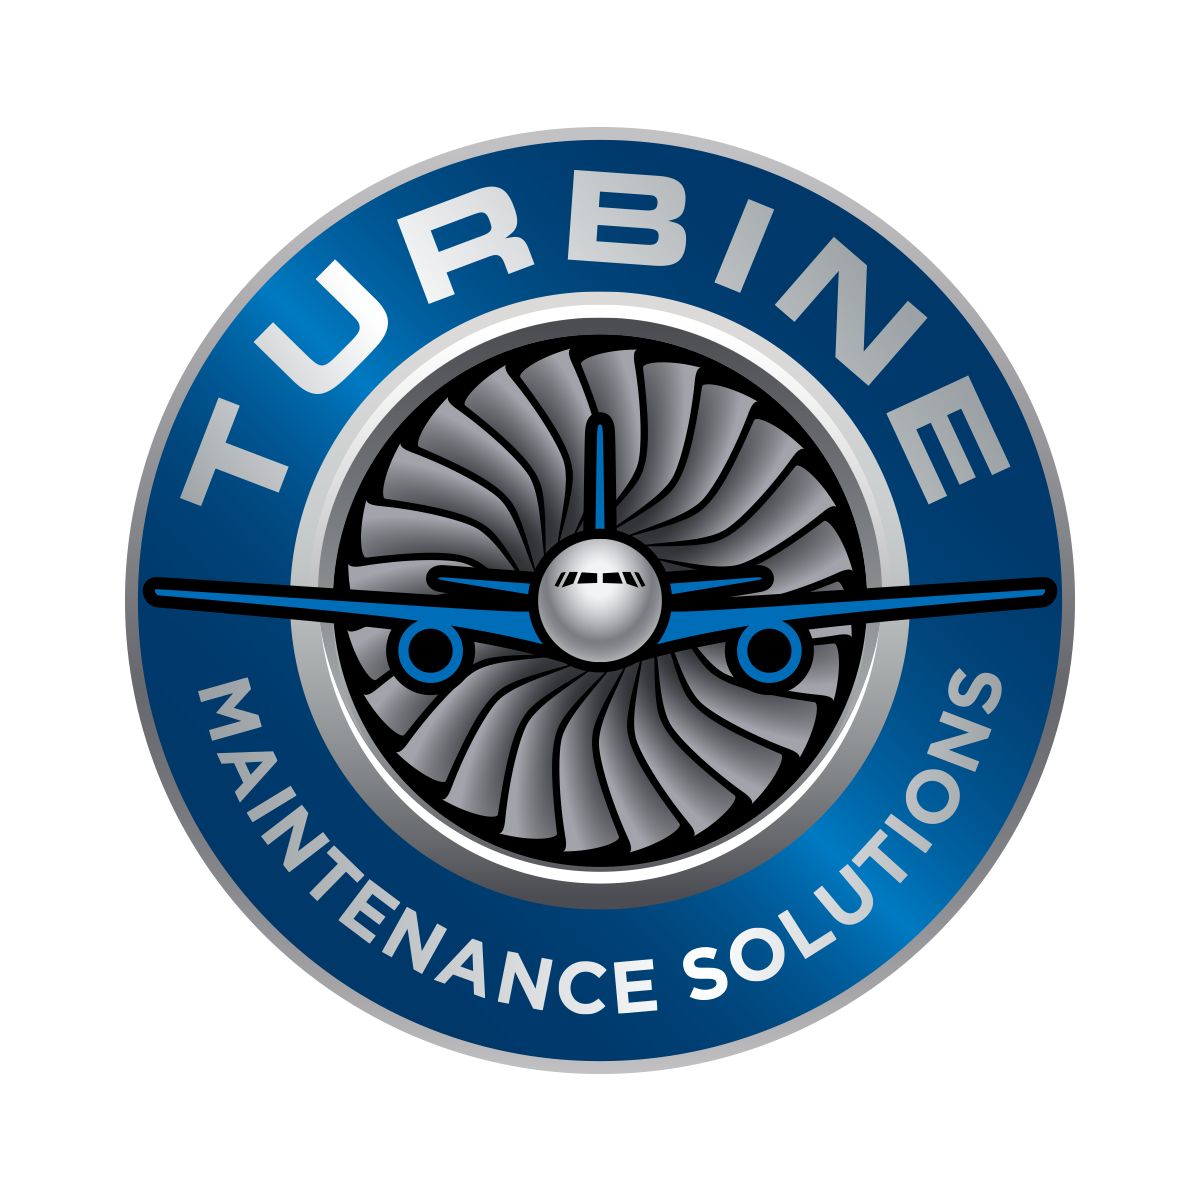 Turbine engine experts to attract new aircraft customers